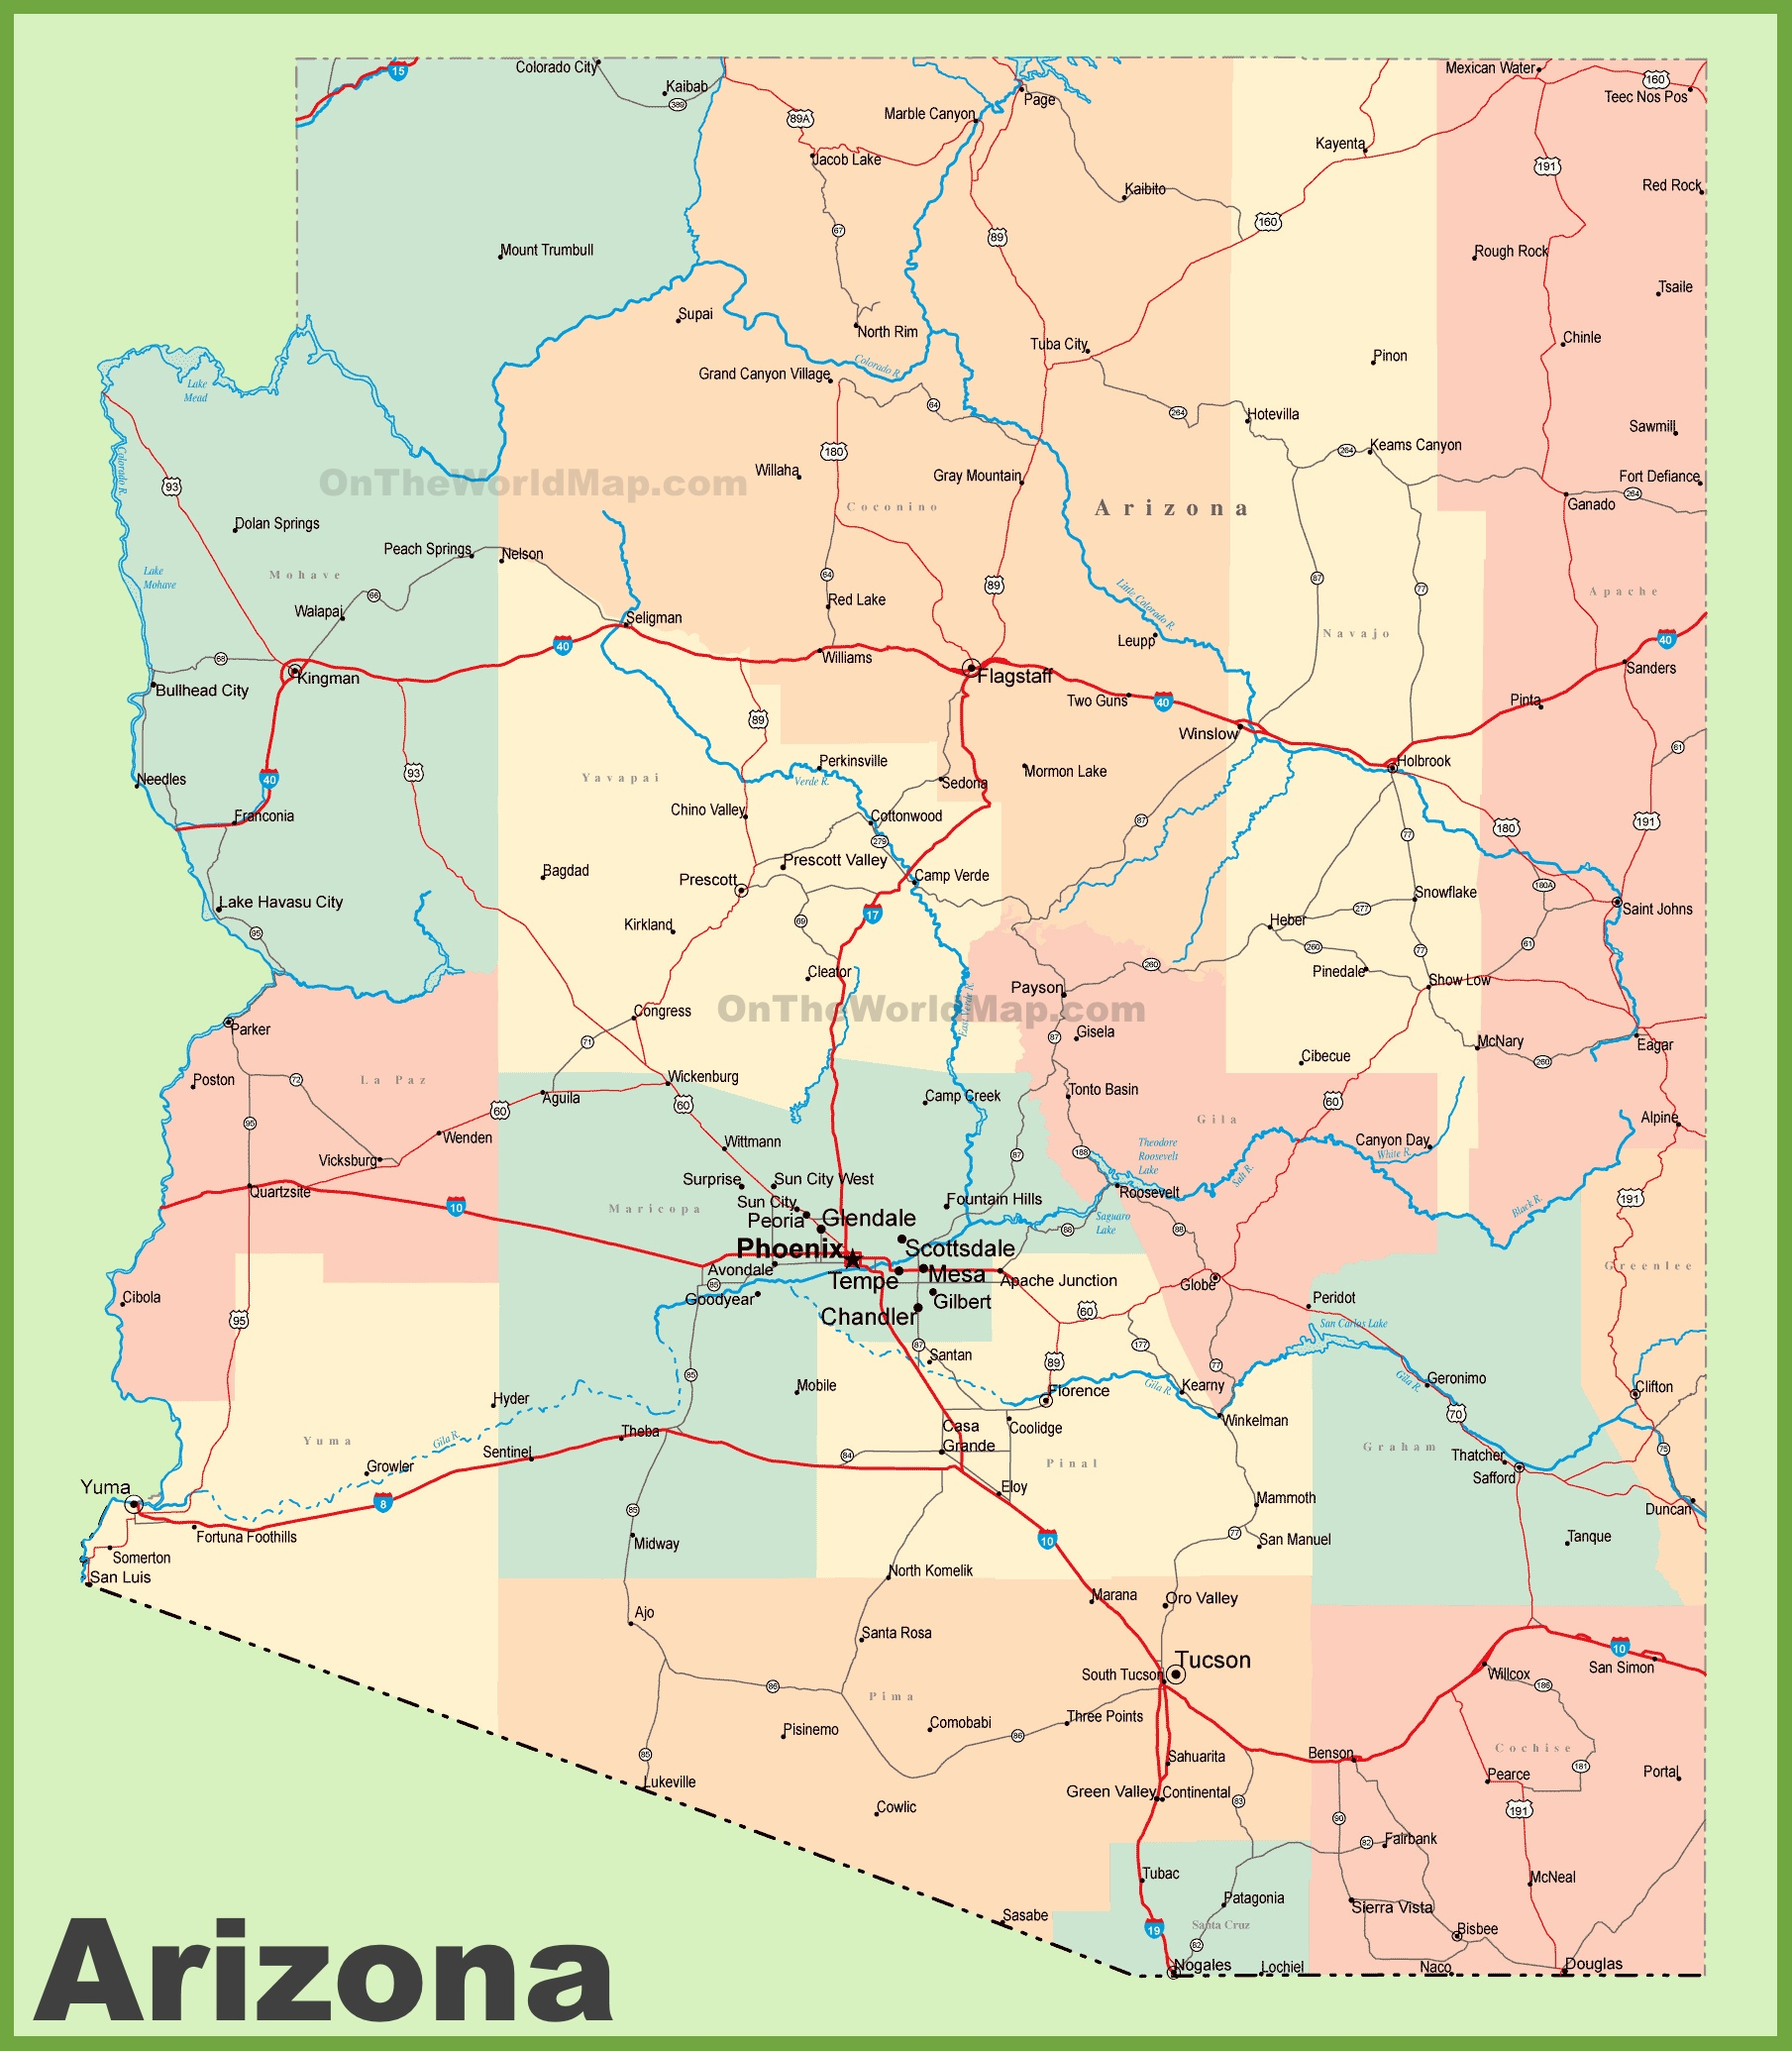 Arizona Road Map With Cities And Towns - Free Printable Map Of Arizona